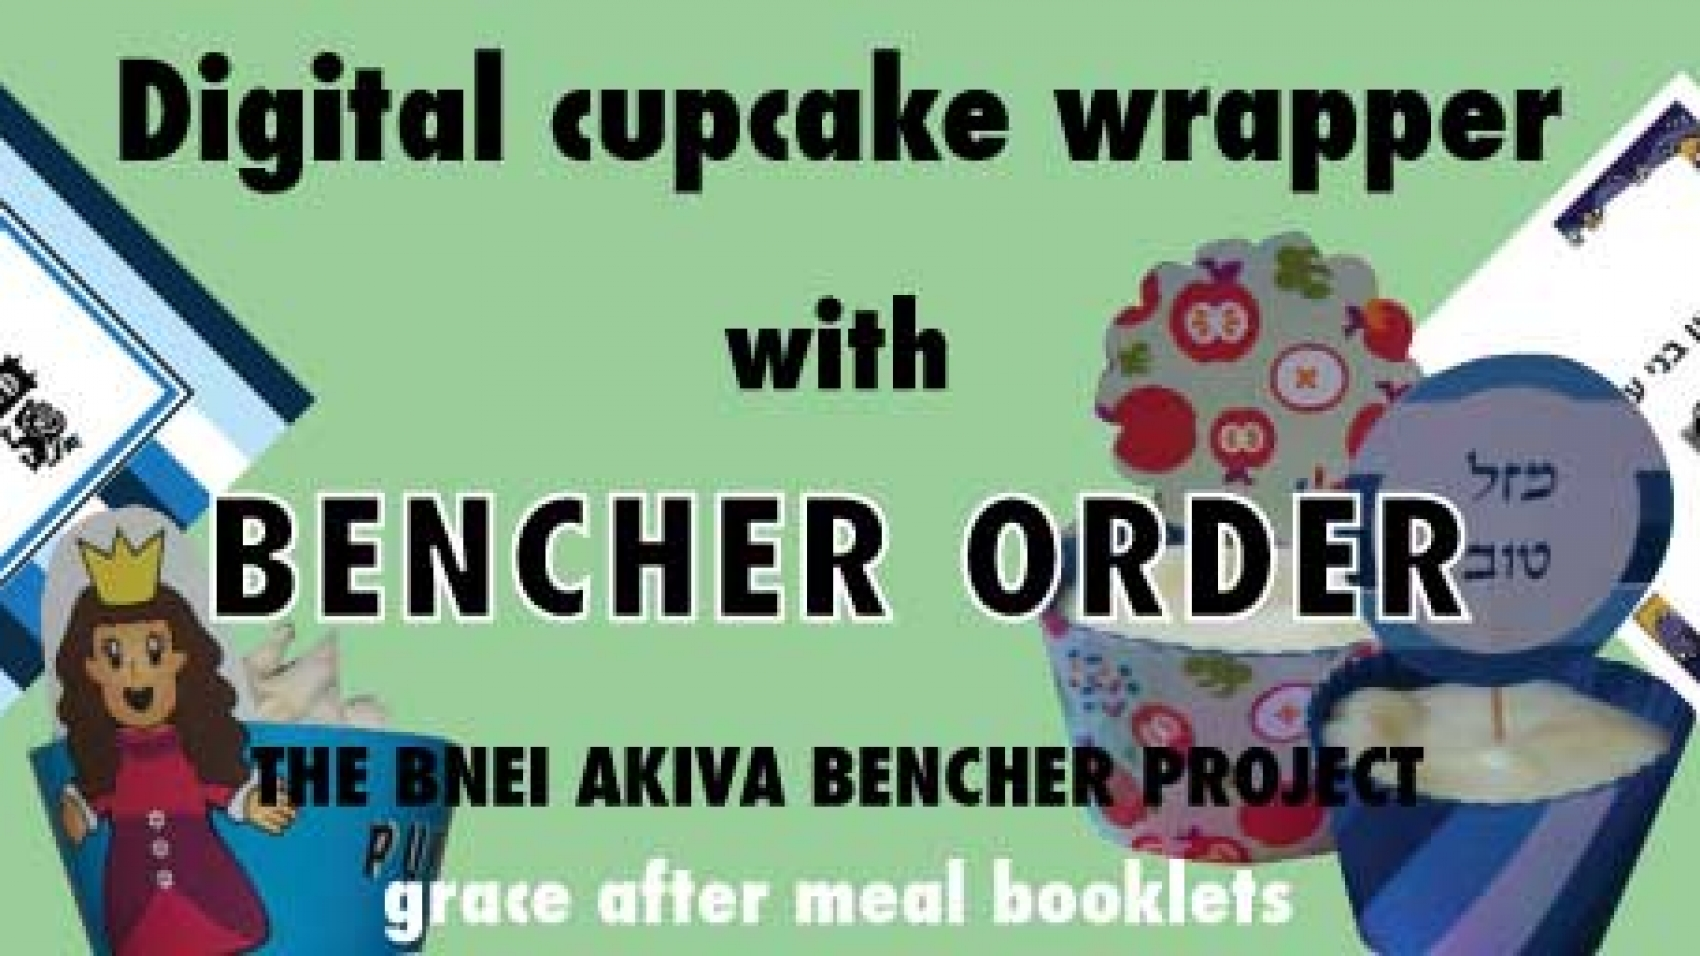 Special through July 14th, Digital cupcake wrapper with birkon order